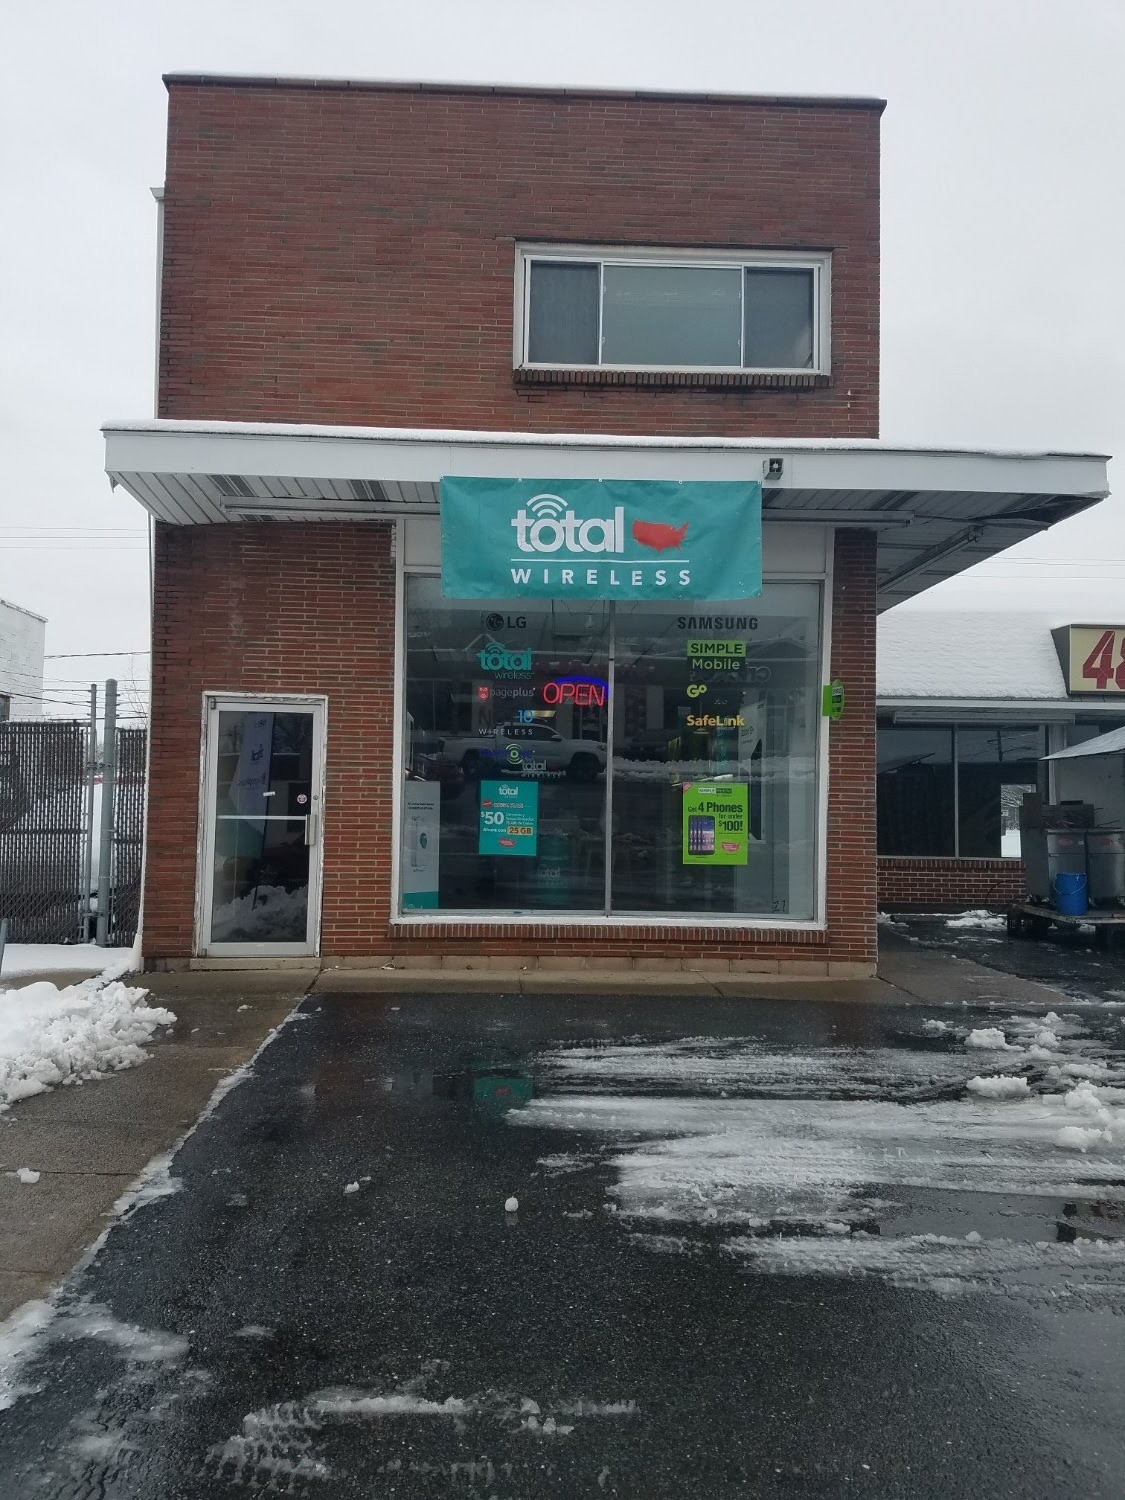 Total Wireless Store front image in Allentown,  PA